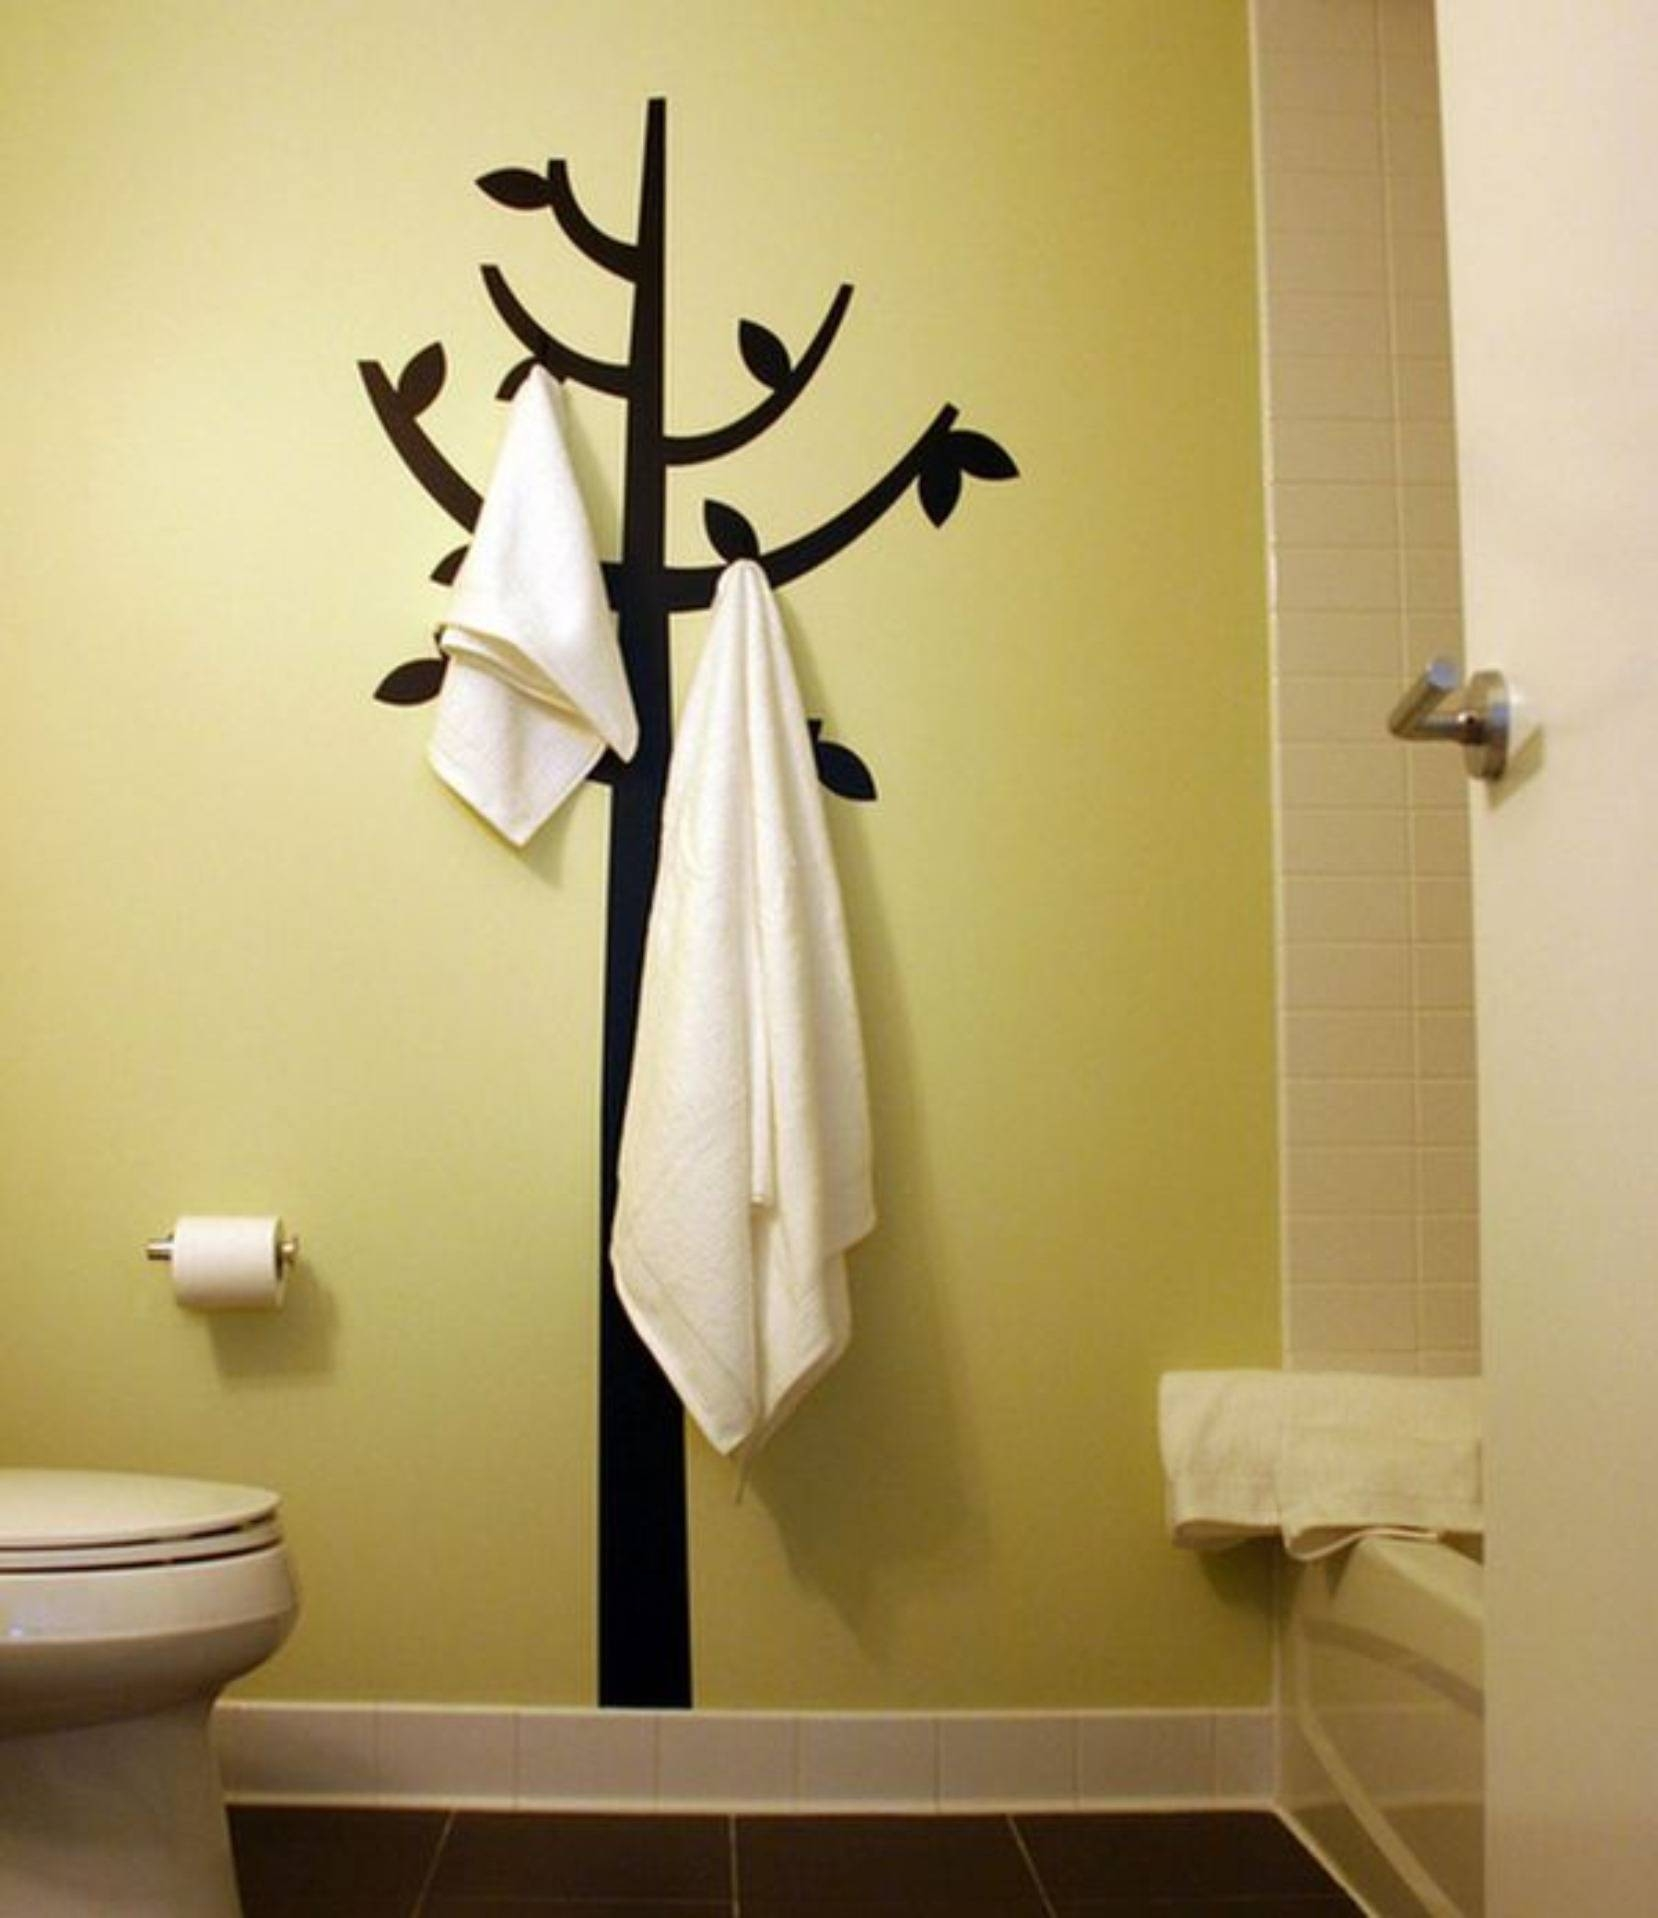 Modern Art Roman Shepeta Earthy Abstract Painting On What Always In Current Wall Art Coat Hooks (View 12 of 20)